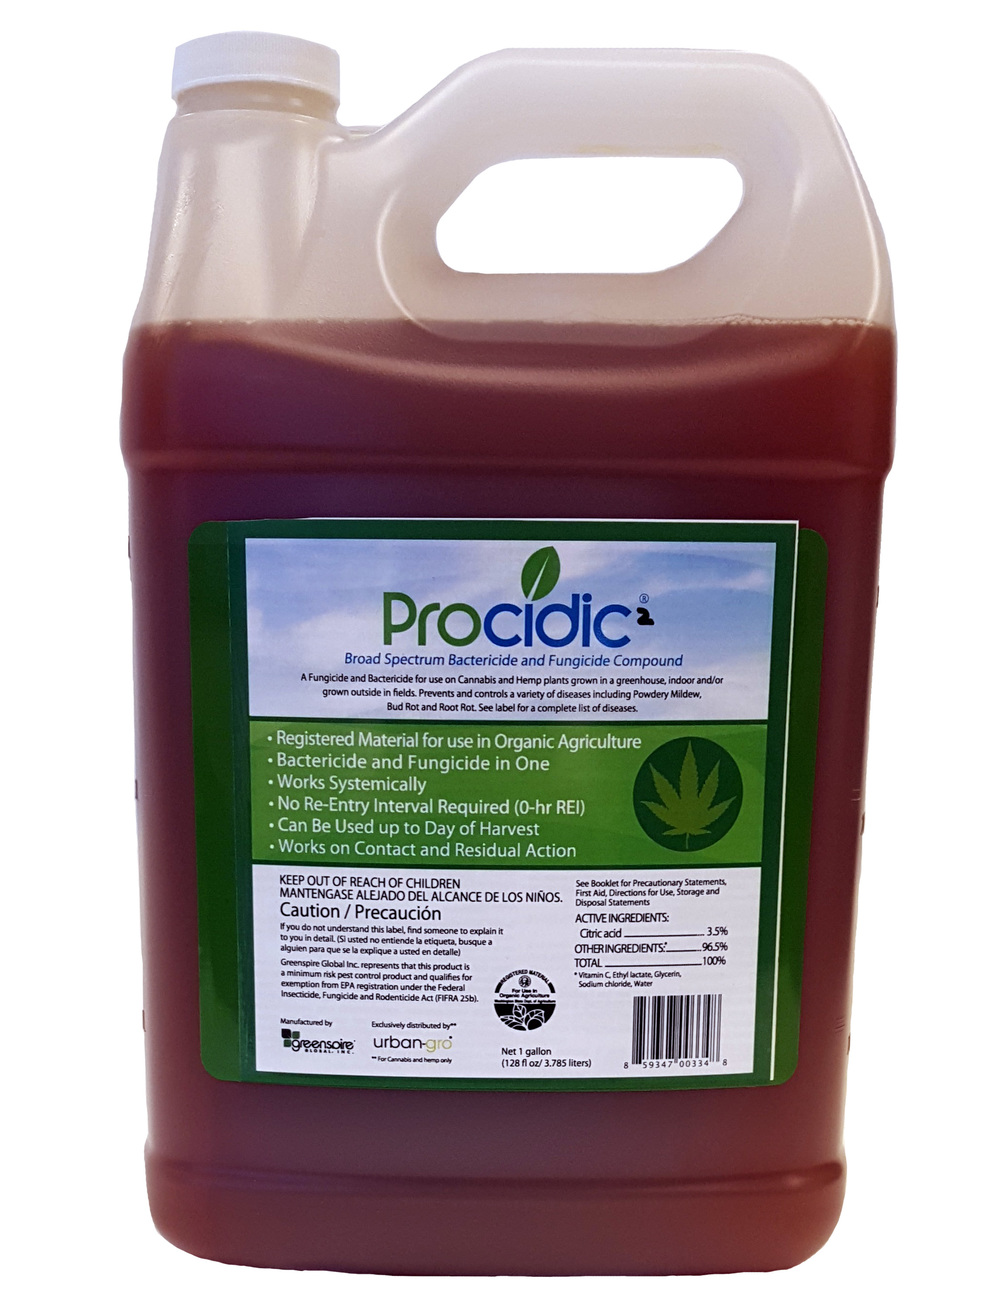 Procidic² is the first registered pesticide for the Cannabis industry.